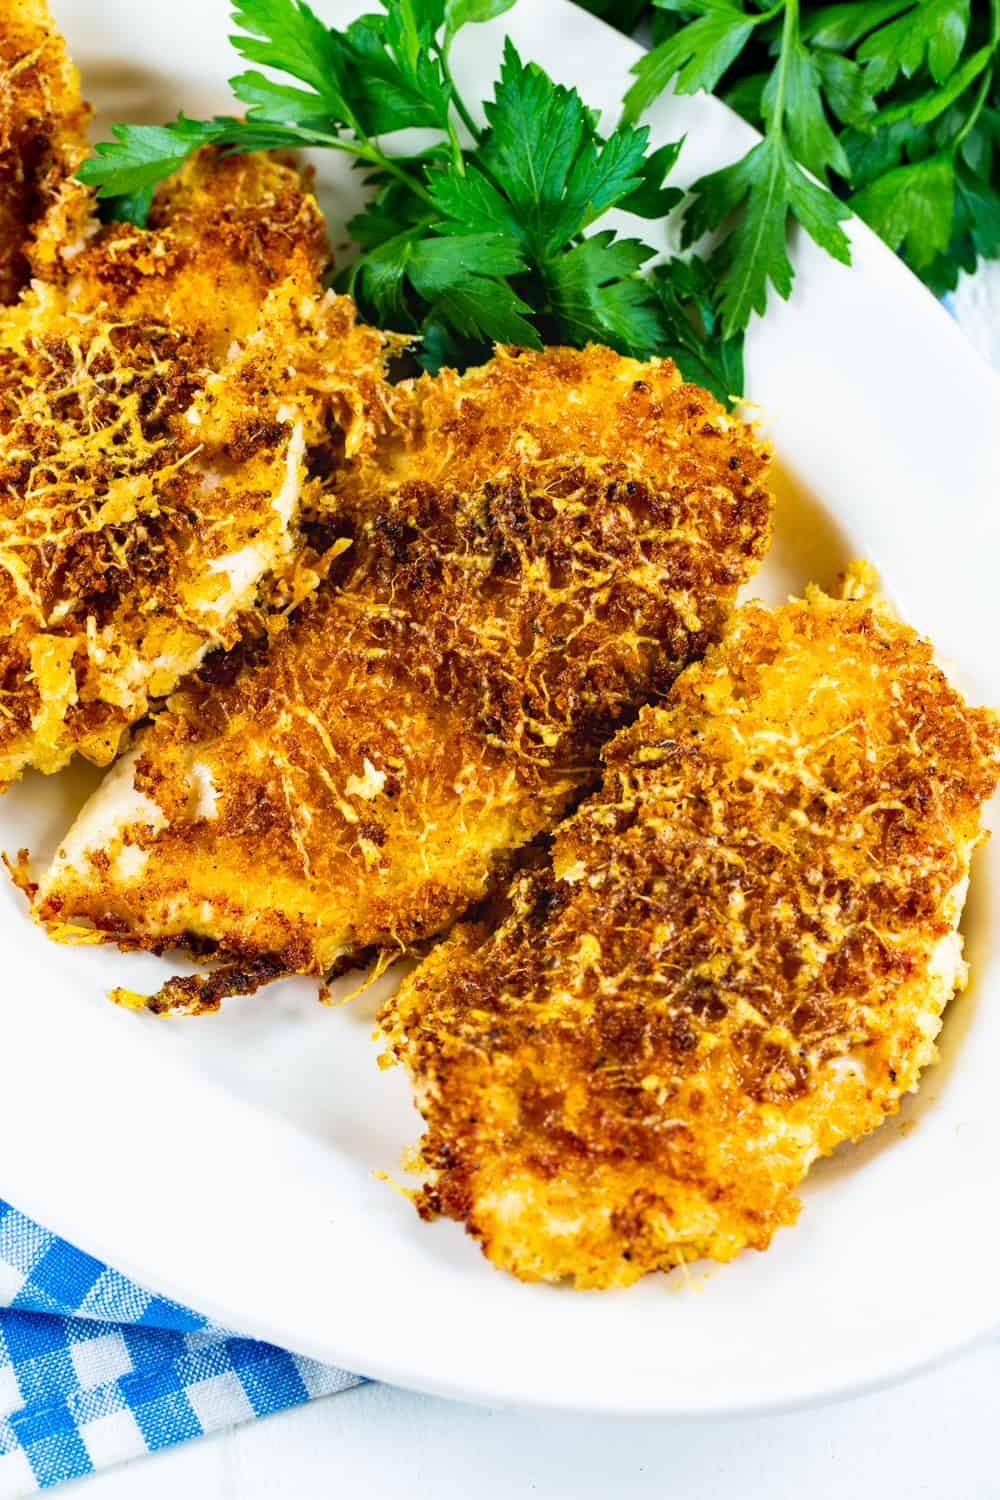 Parmesan Crusted Chicken on serving platter with parsley.